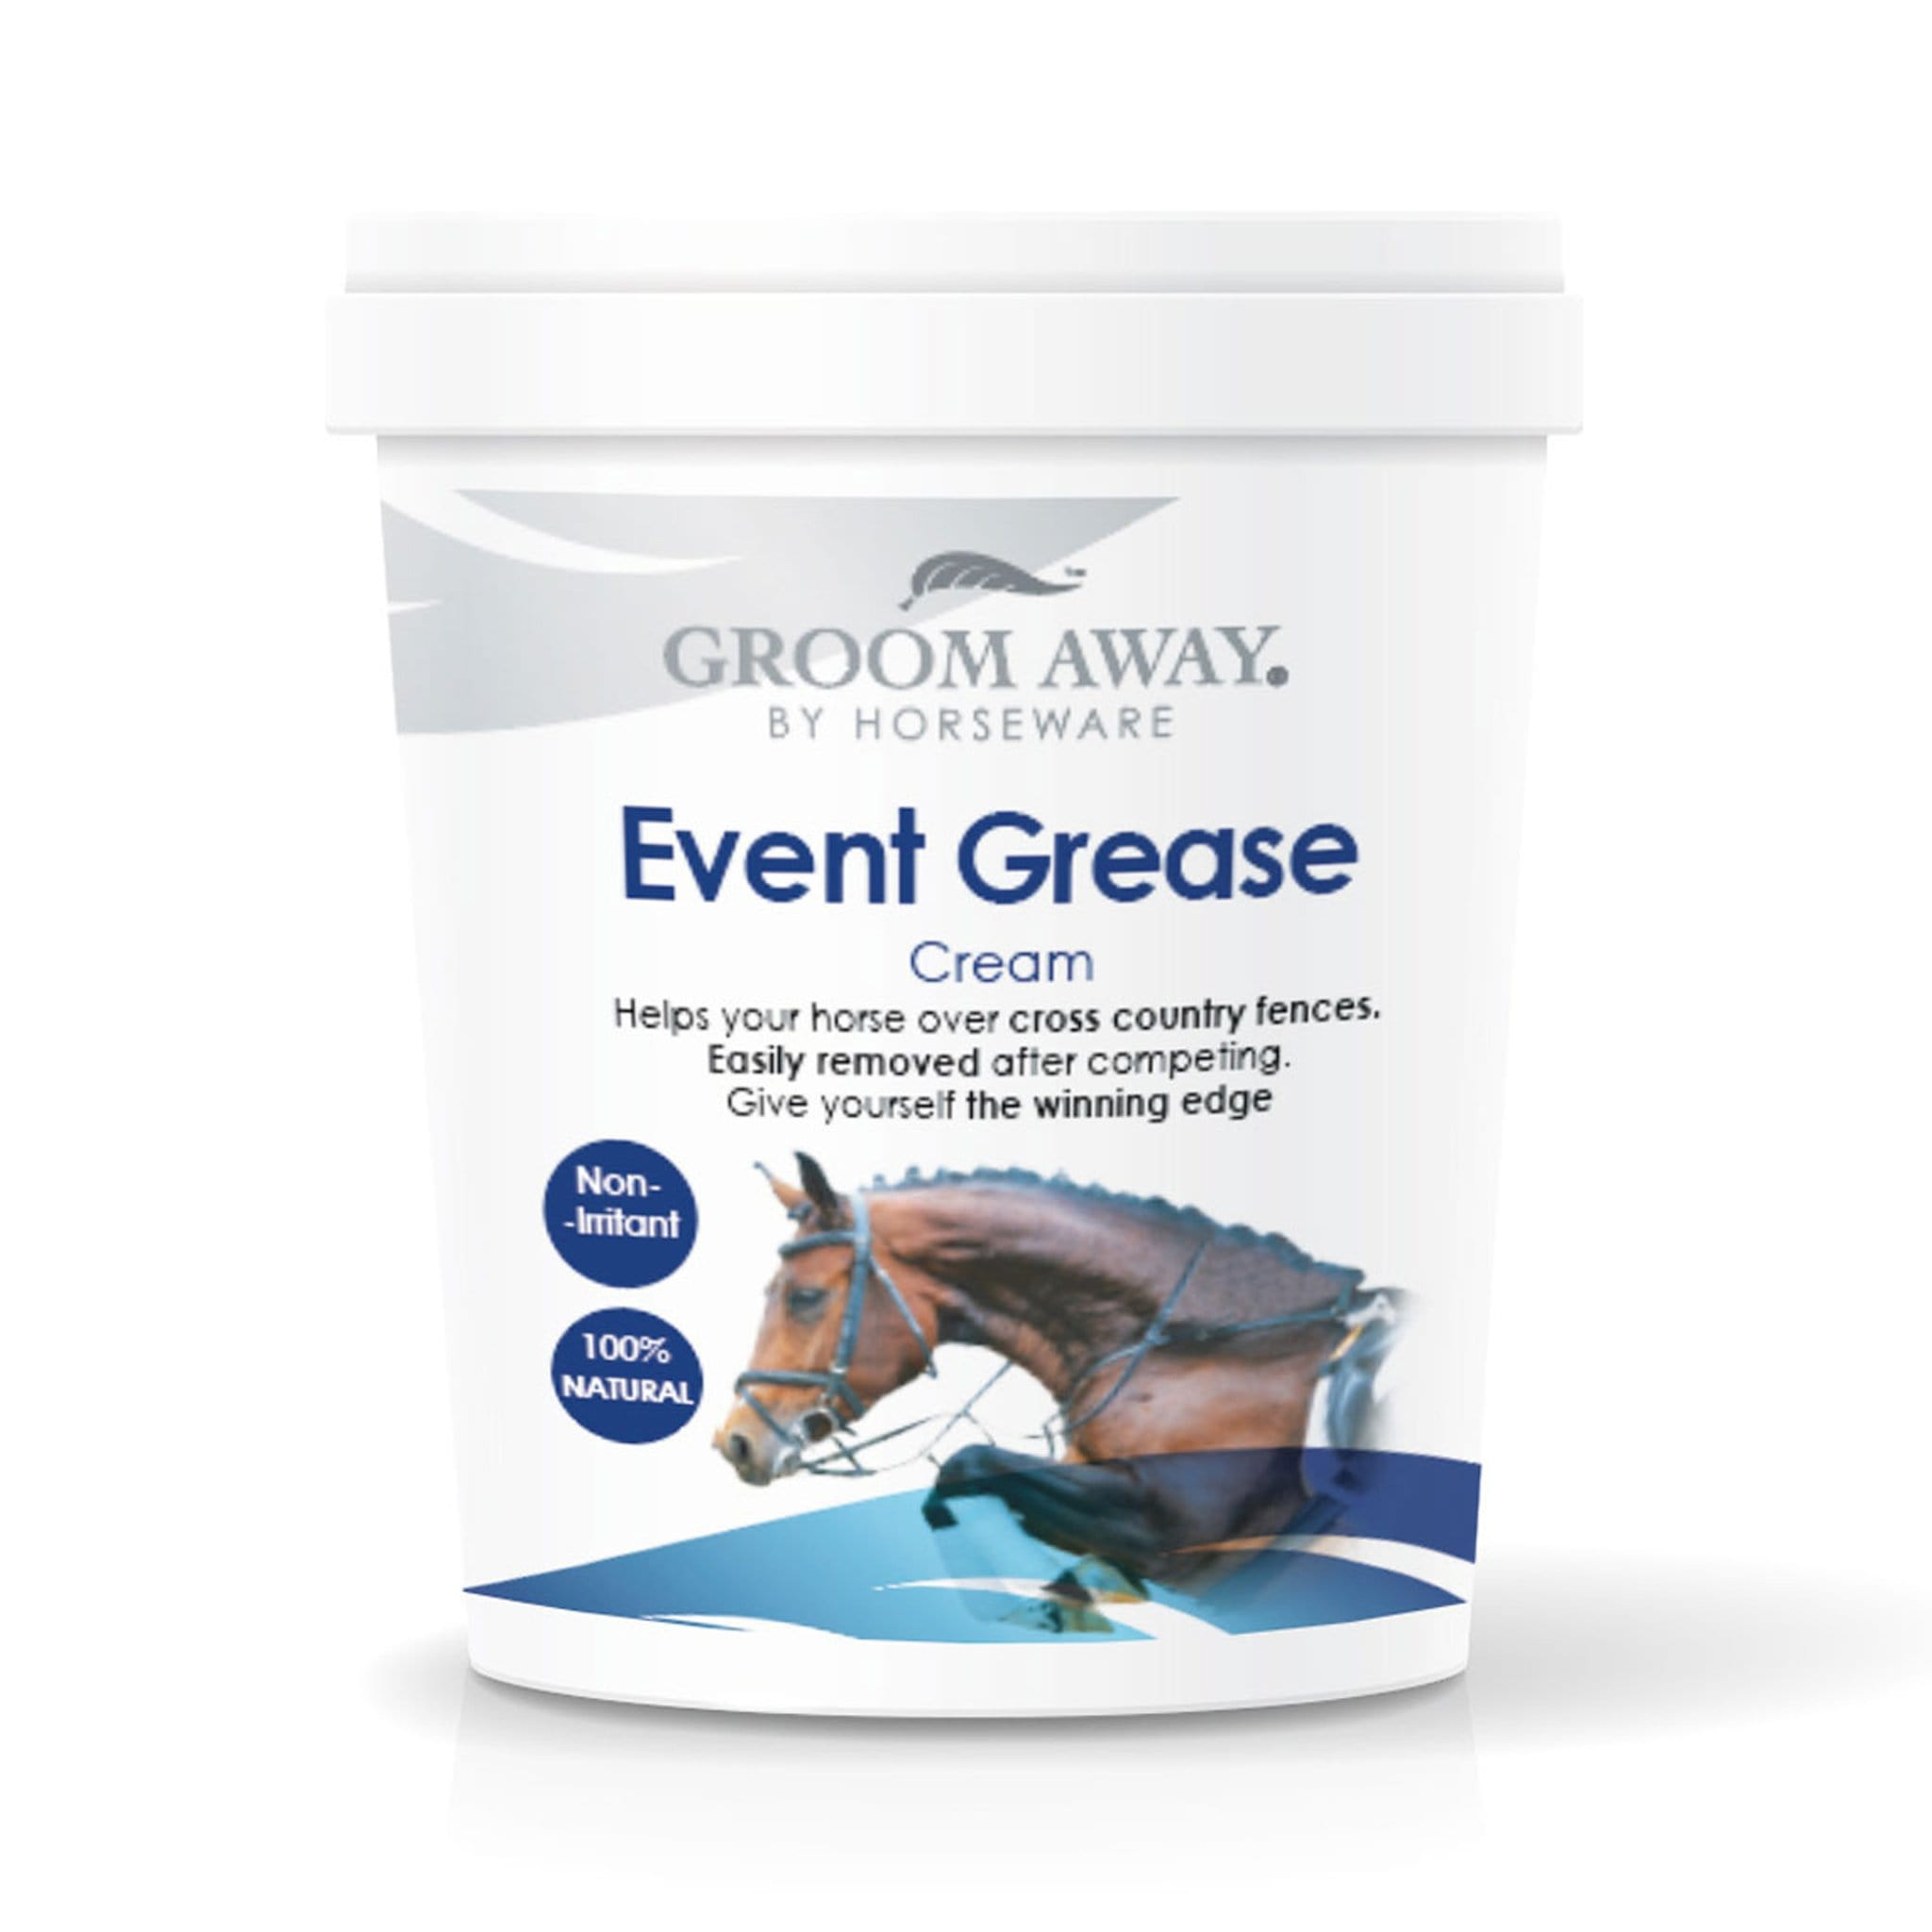 Groom Away Event Grease 20395 20396.